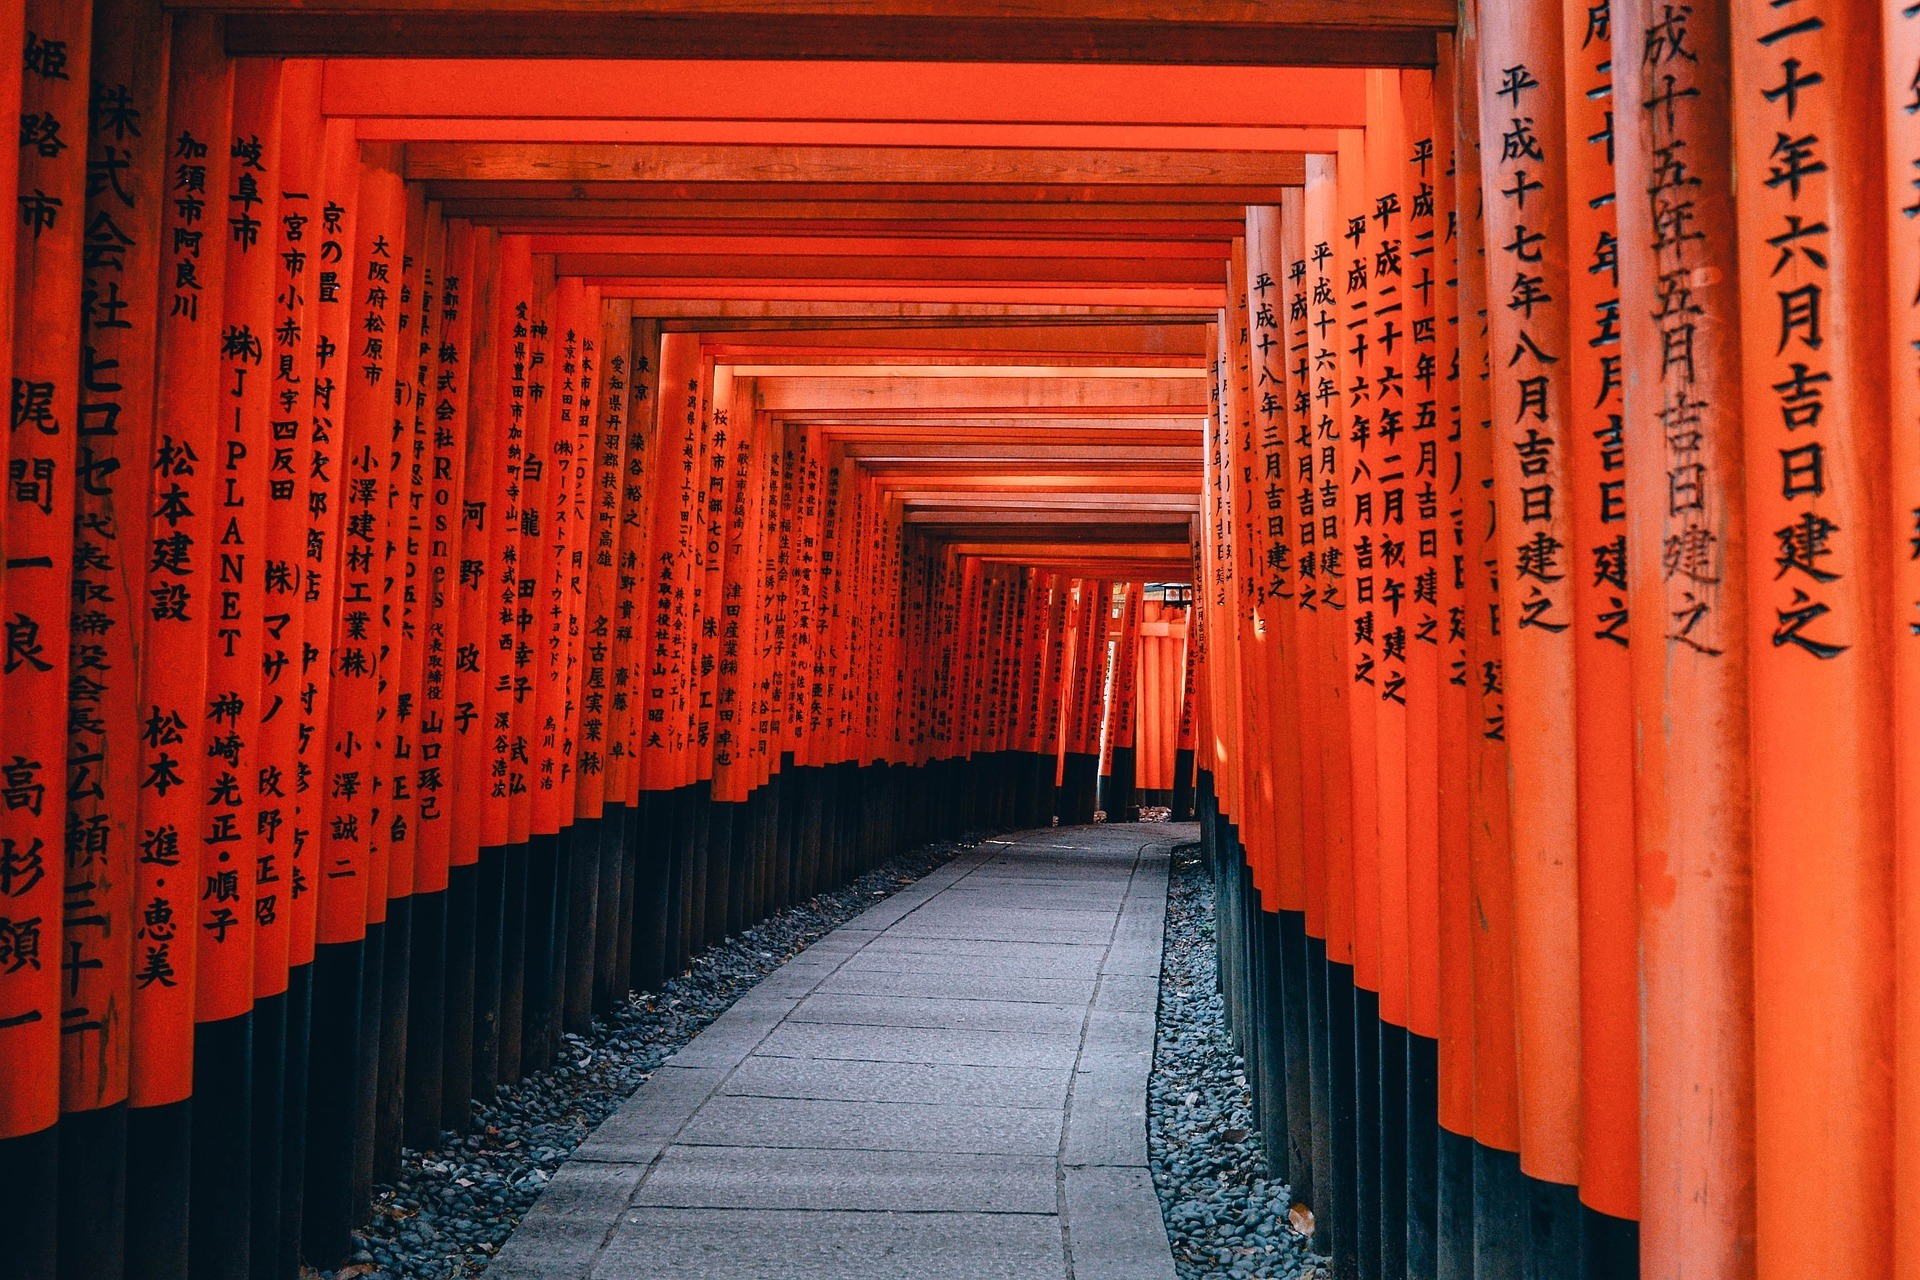 A famous shrine and attraction in Japan